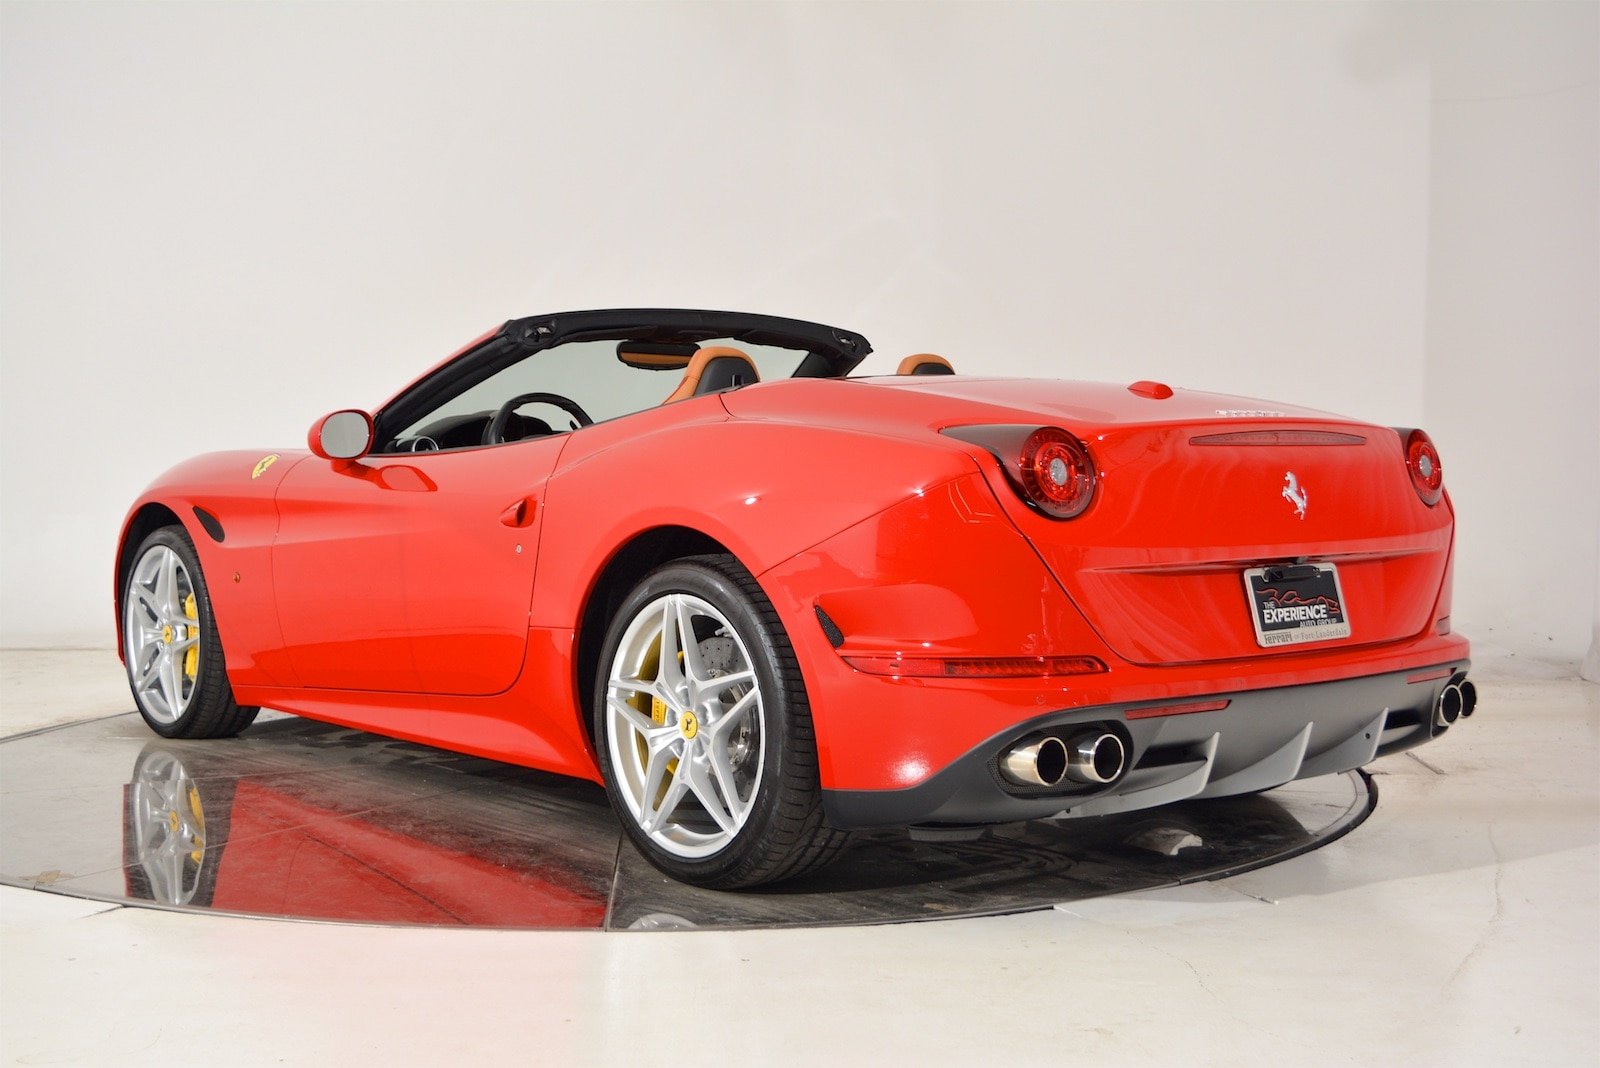 2016 ferrari california t convertible for sale in fort lauderdale fl. Cars Review. Best American Auto & Cars Review